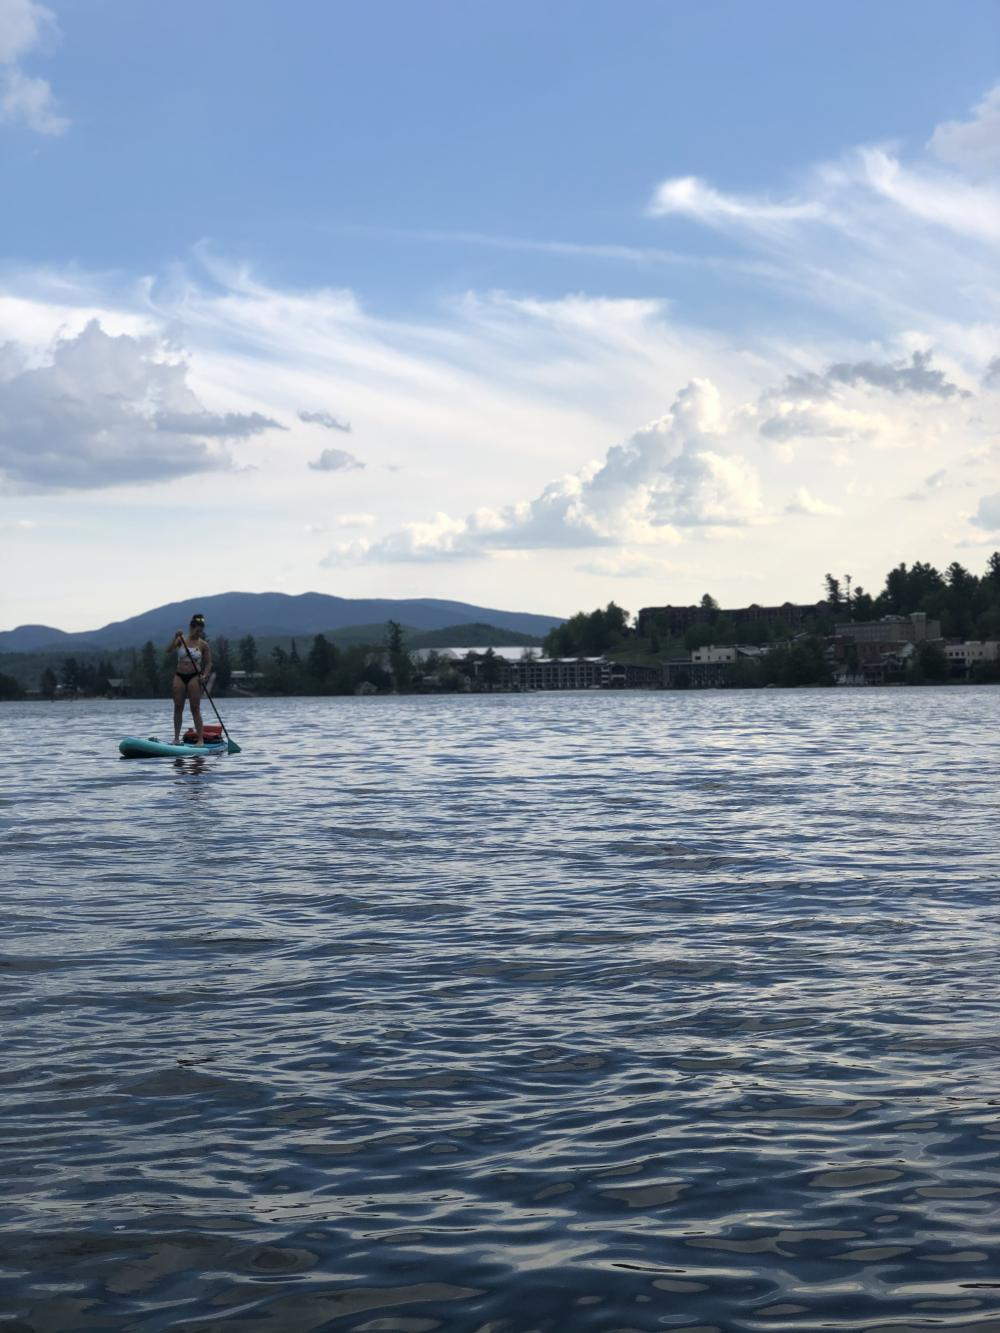 A woman paddles a SUP on a lake with mountains and trees in the background.